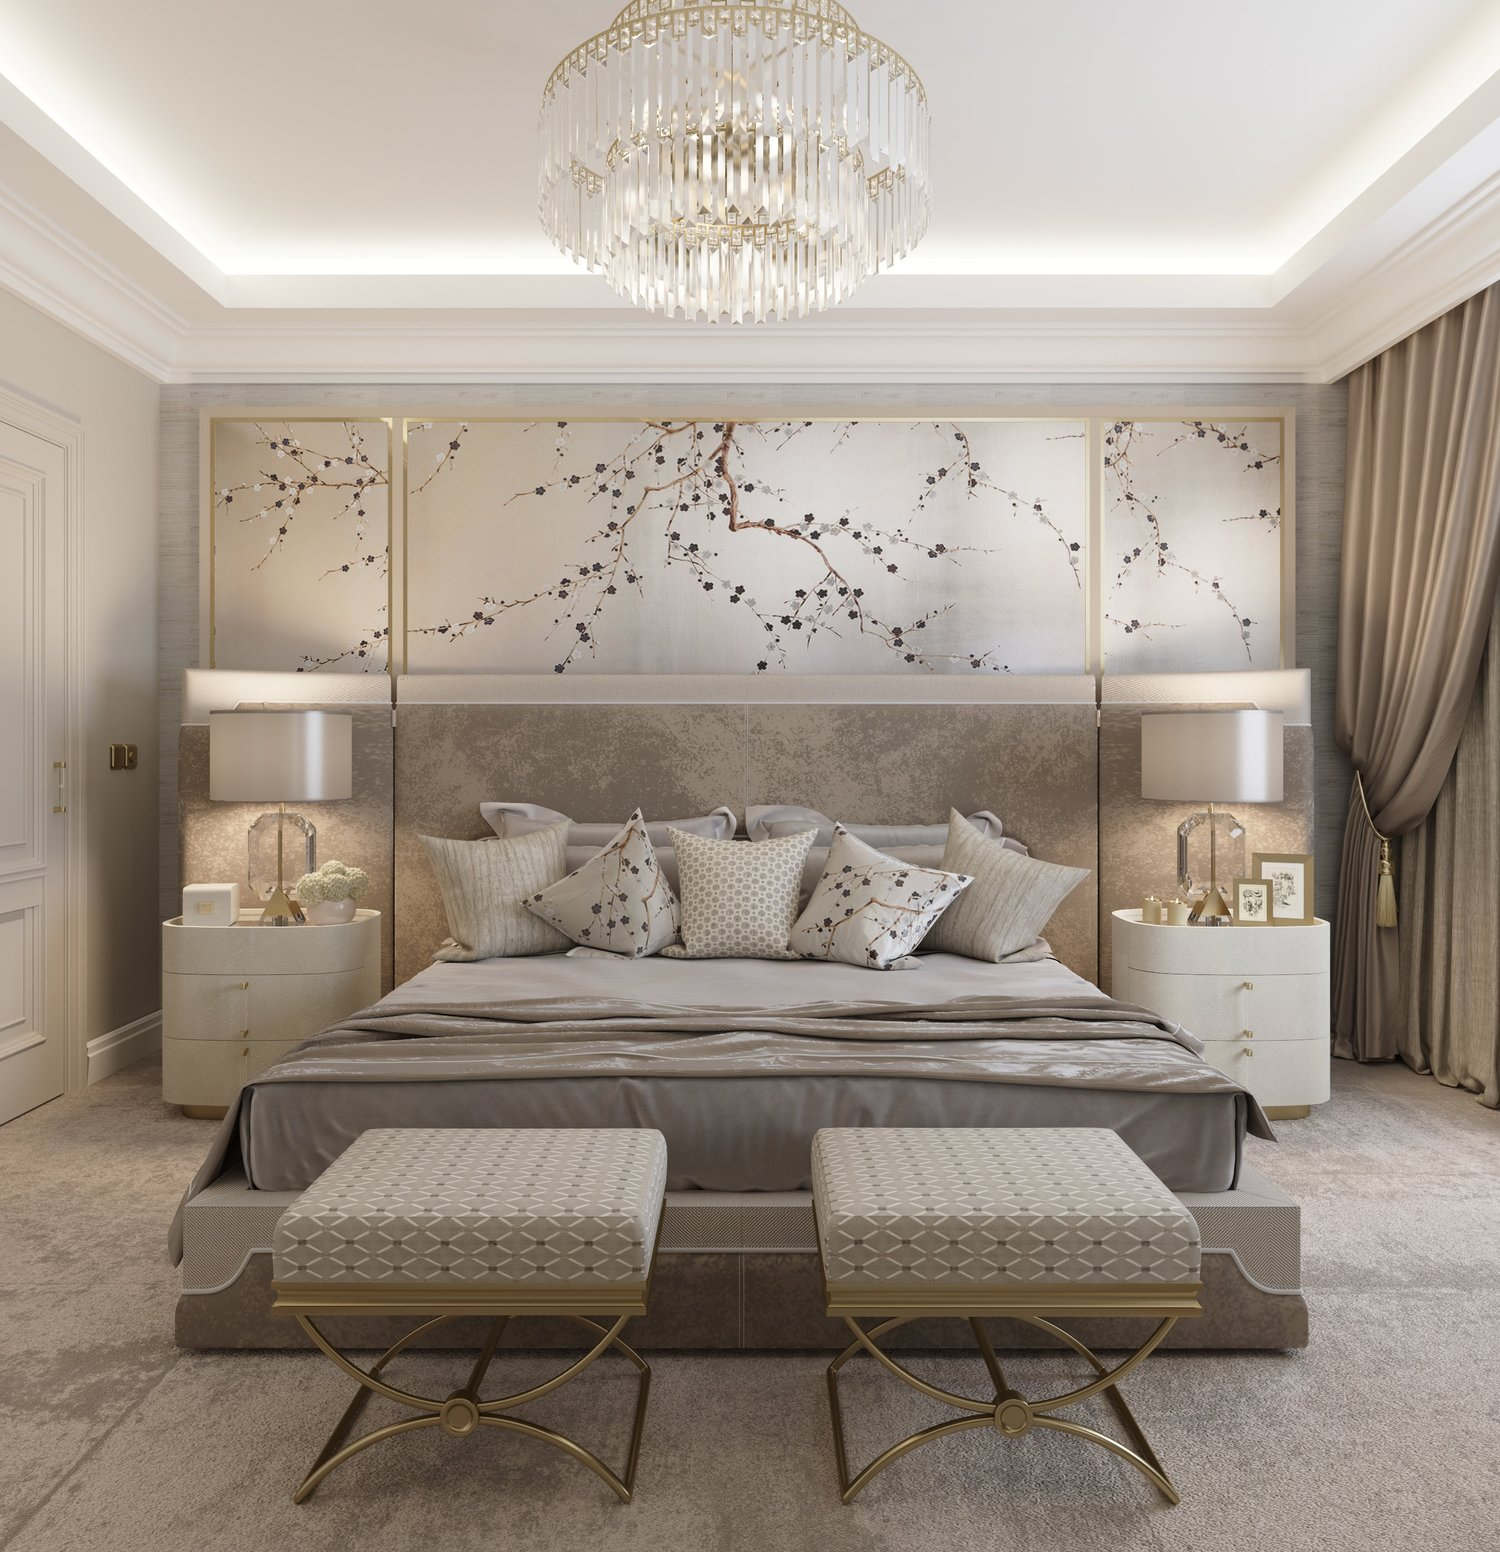 Chelsea House Interiors Luxury Interior Design London